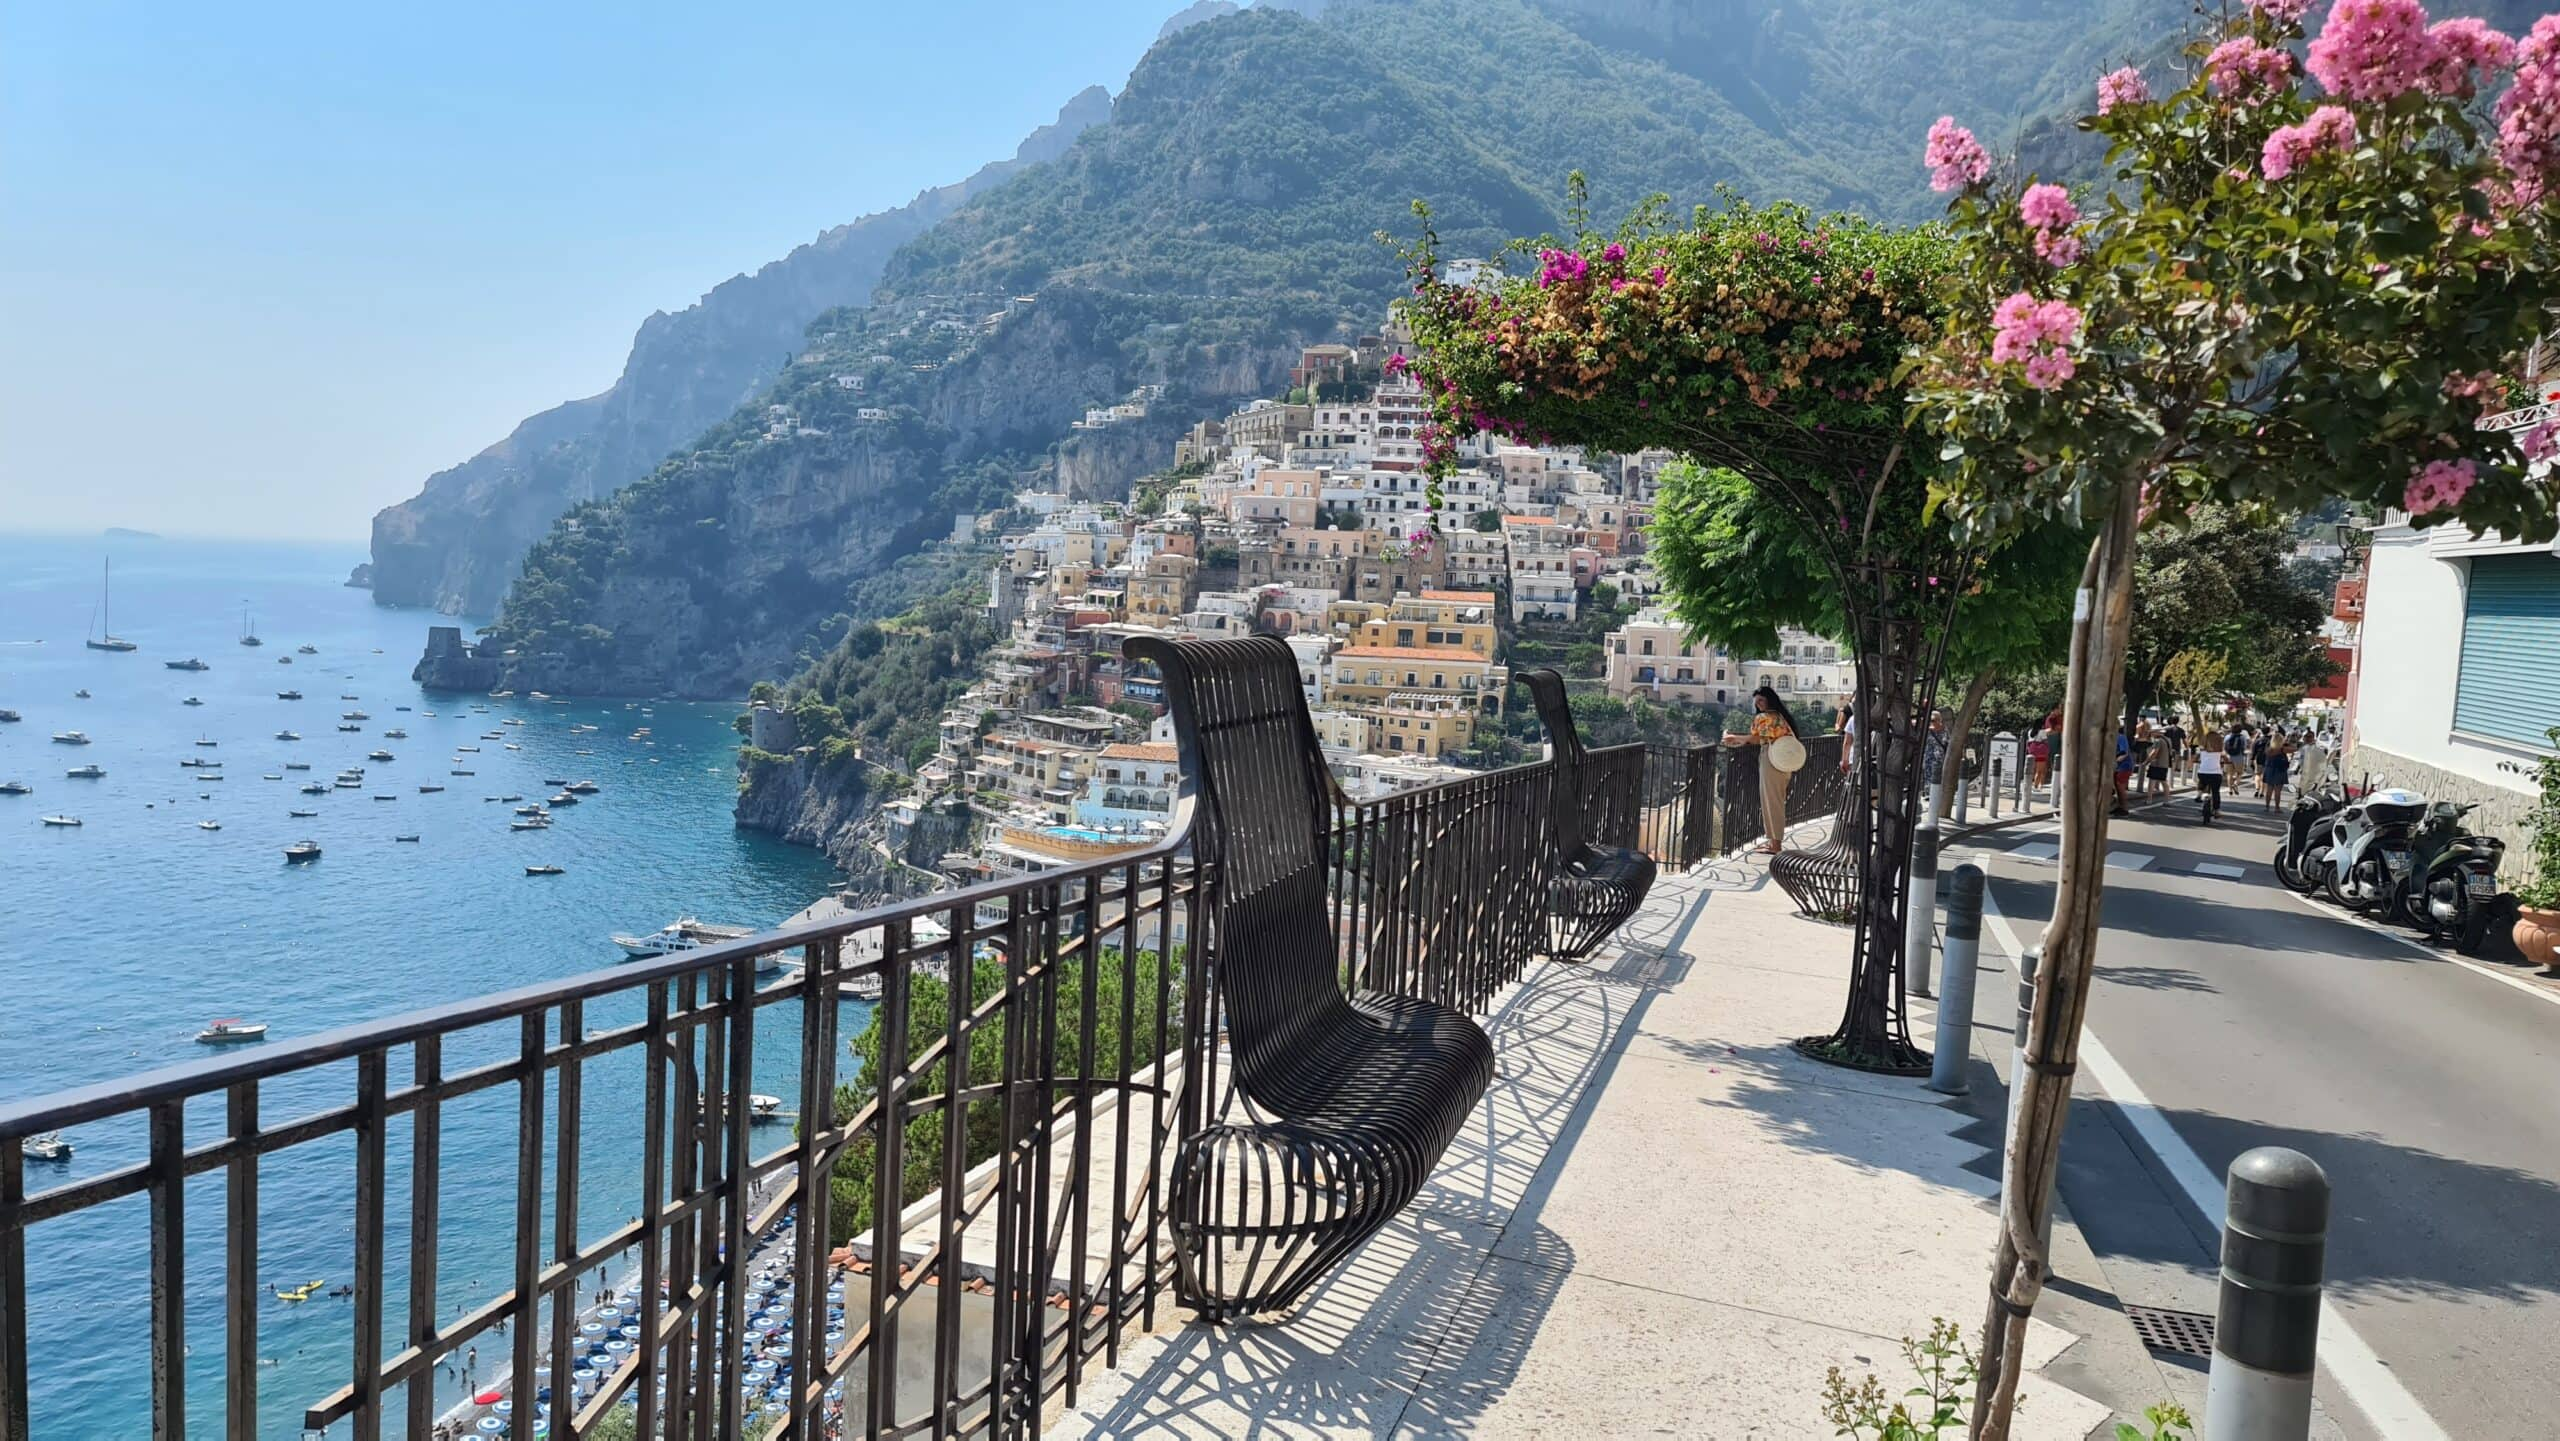 Positano Italy: 10 unforgettable Things to do in Positano & Positano beach 39